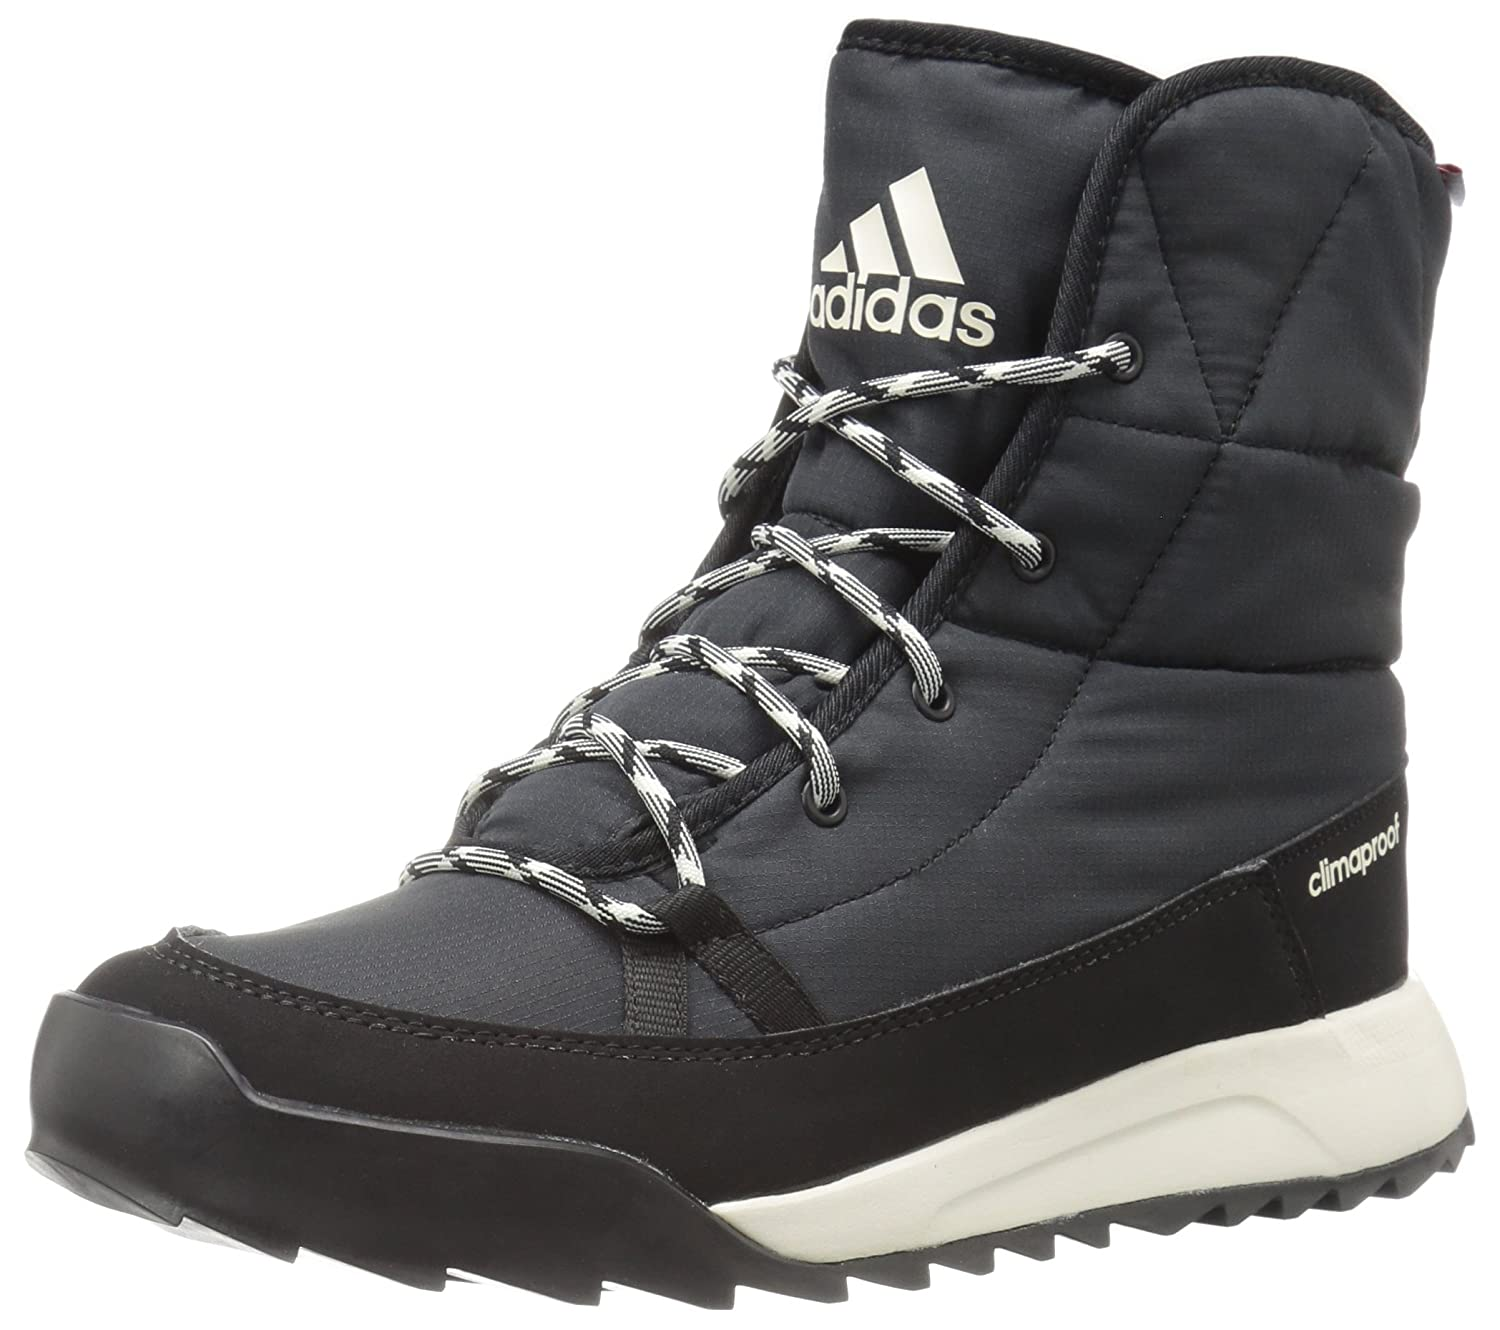 adidas outdoor CP Women's CW Choleah Insulated CP outdoor Snow Boot B018WSX56M 10 B(M) US|Black/Chalk White/Black 29b641